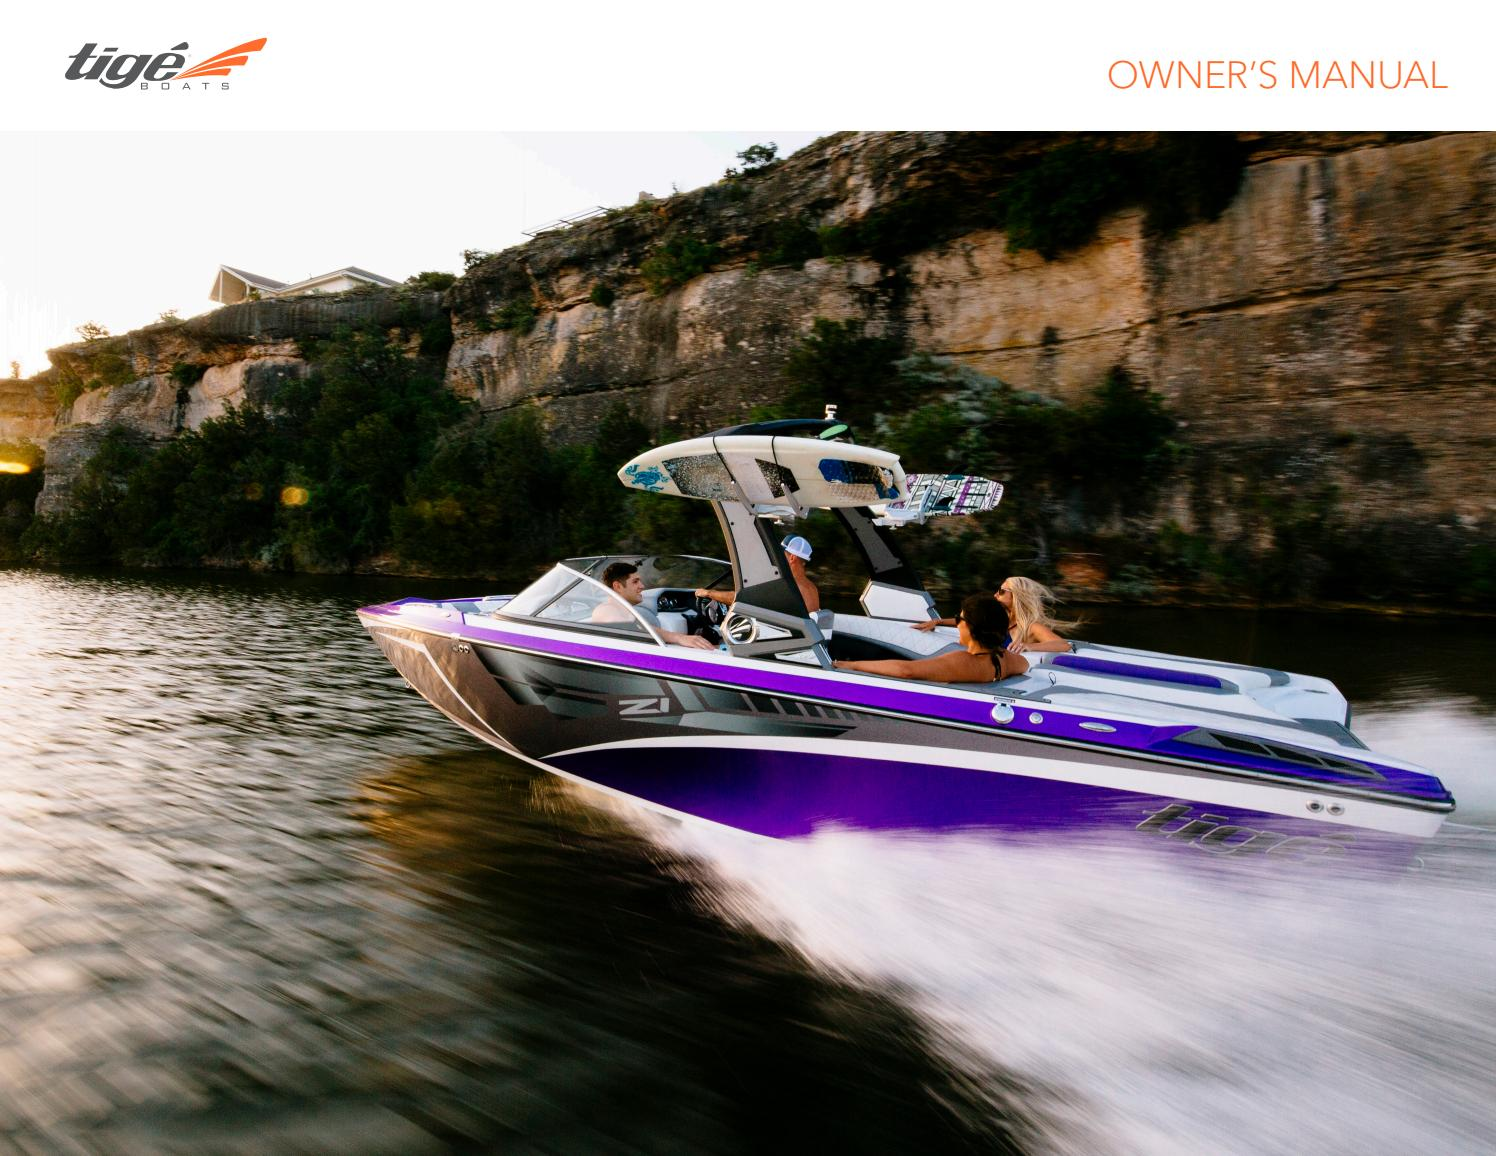 2017 Tige Owners Manual By Boats Issuu To Boat Builders And Recreational Typical Wiring Diagram